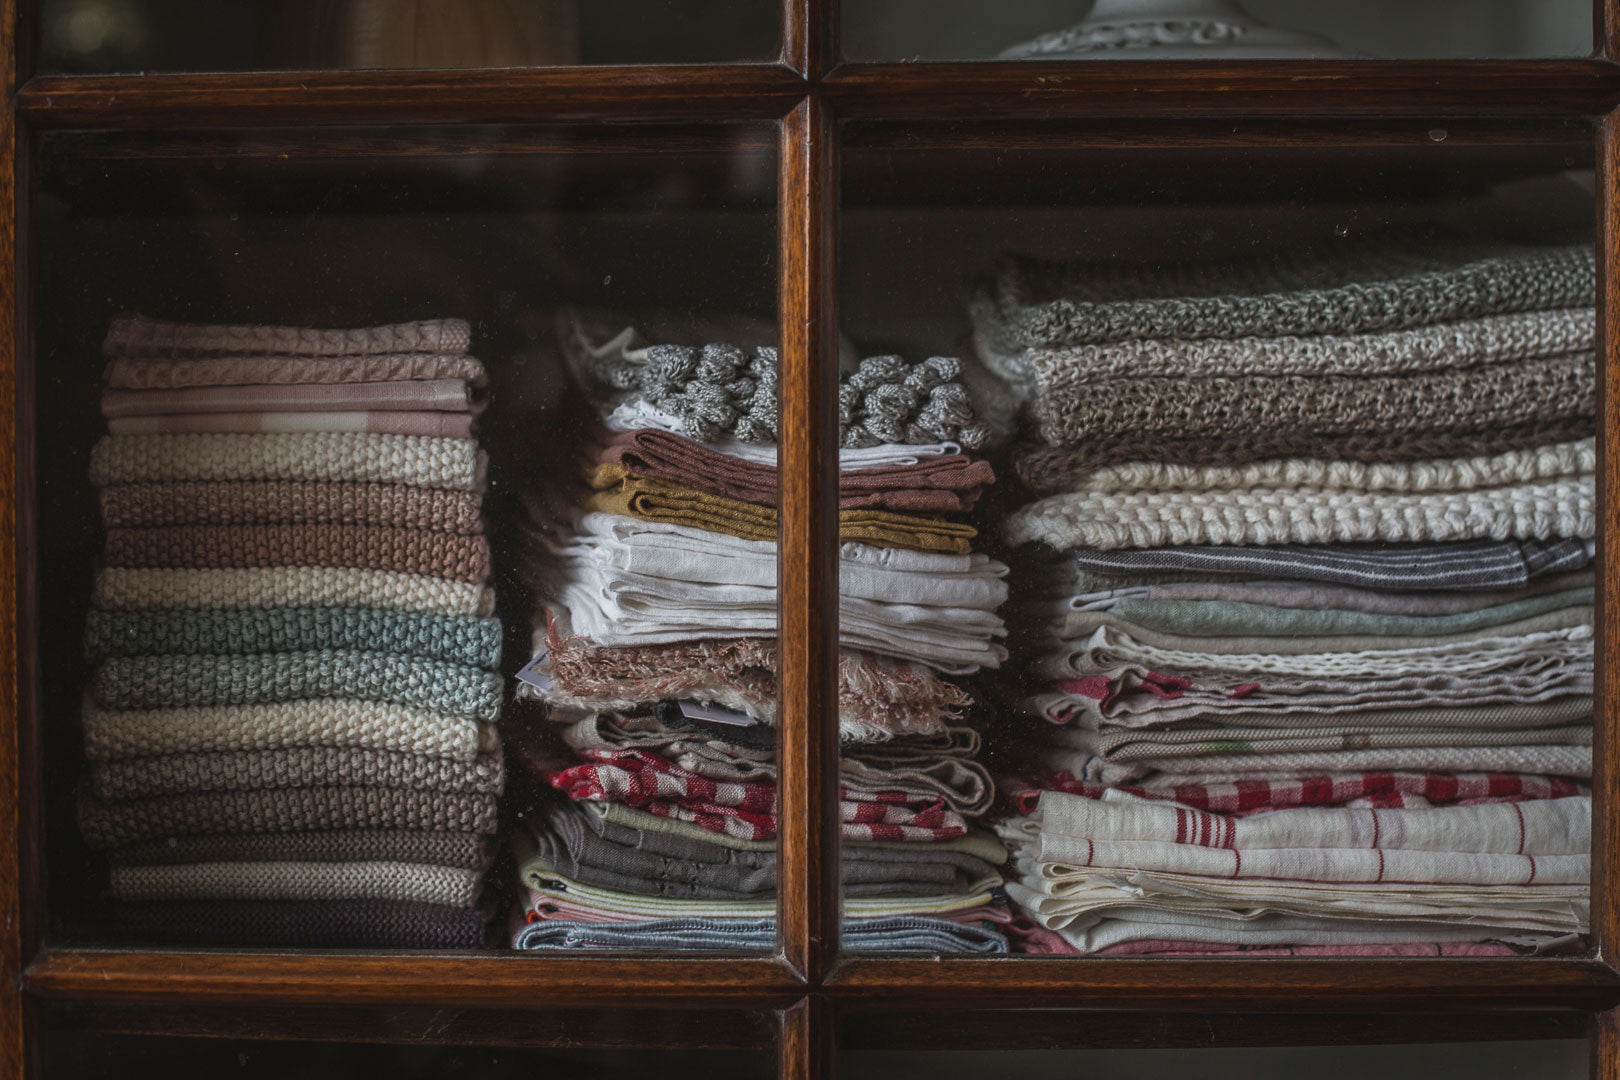 Stacks of linen in Sally Boyle's home